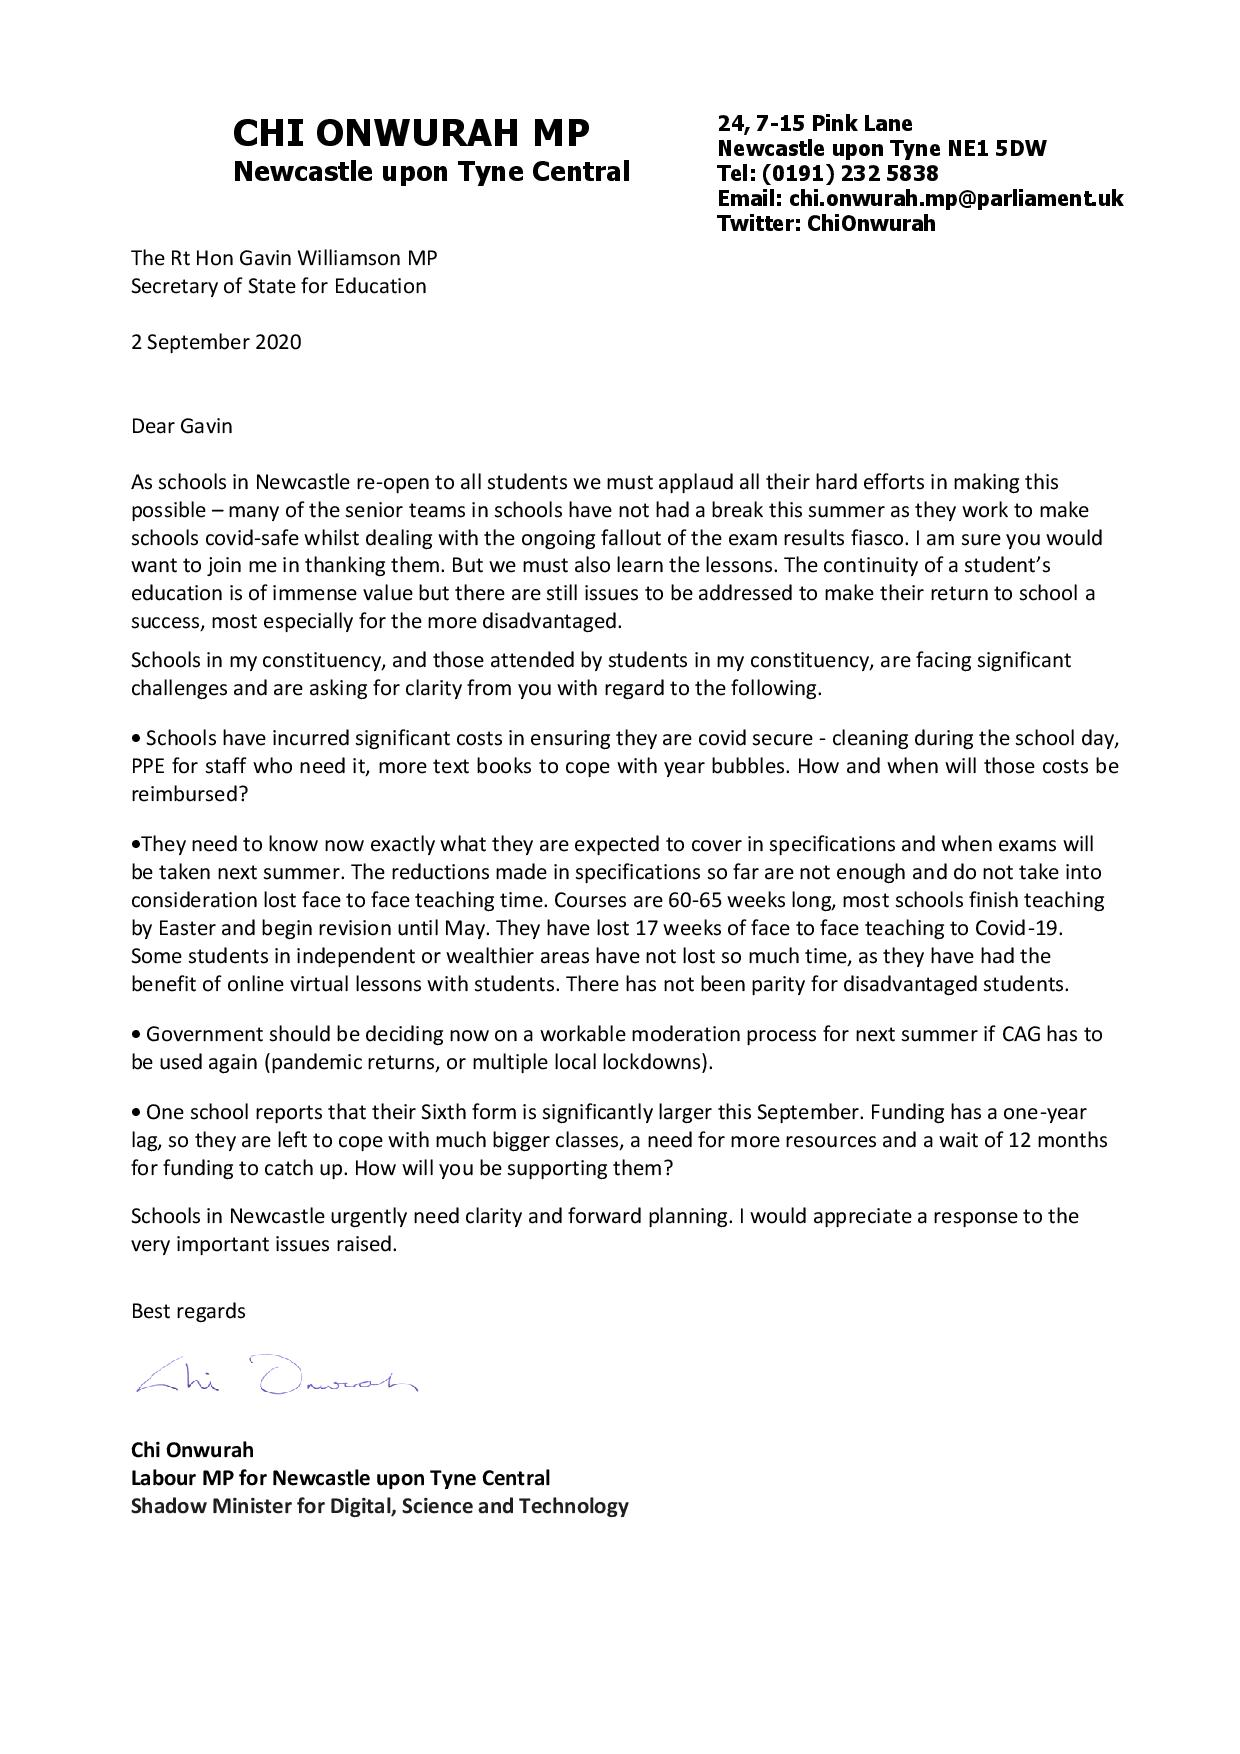 Chi writes to the Education Secretary about Newcastle school reopening